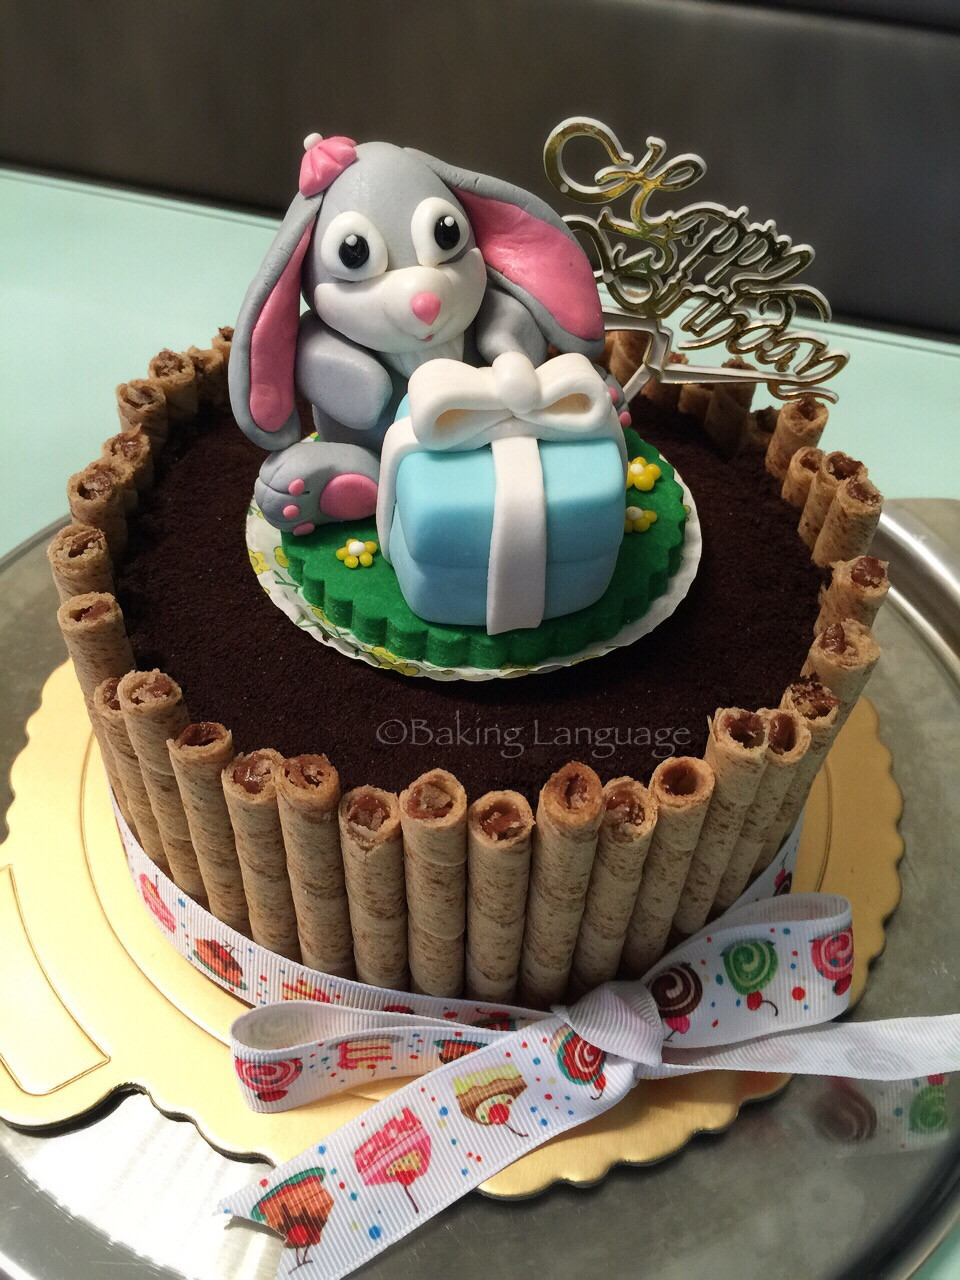 Best ideas about Bunny Birthday Cake . Save or Pin Bunny Cookies & Cream Chocolate Birthday Cake Now.